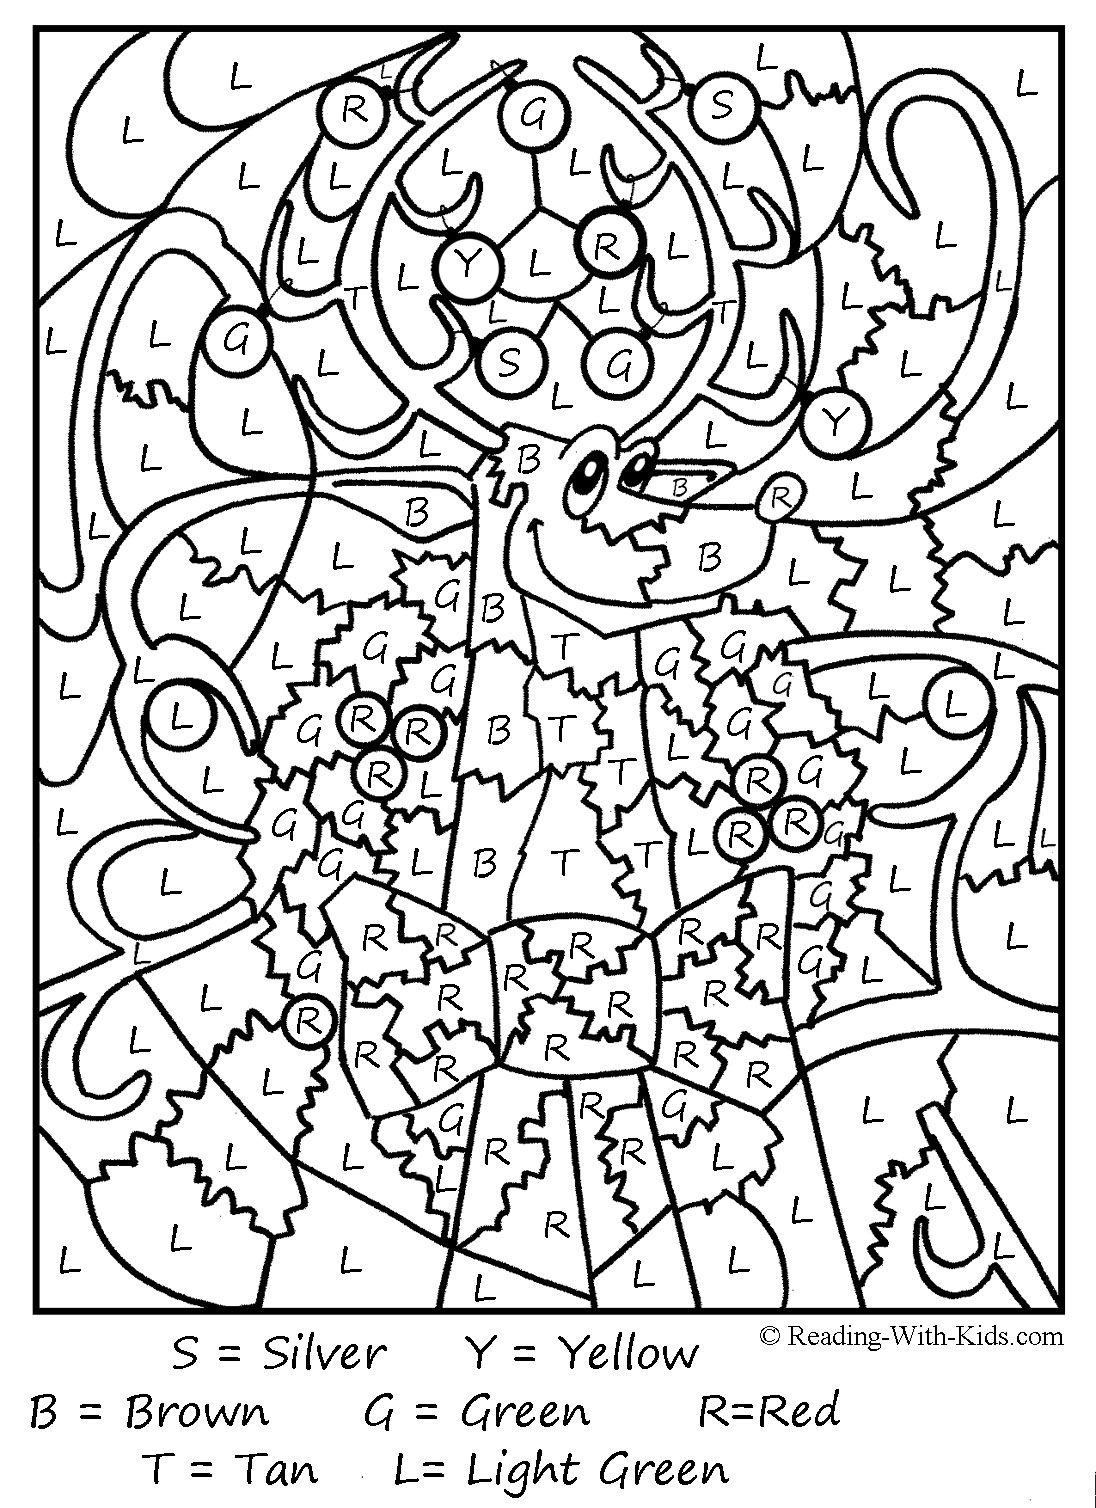 Christmas Colornumber Coloring Pages Printable | Coloring Pages - Free Printable Christmas Color By Number Coloring Pages